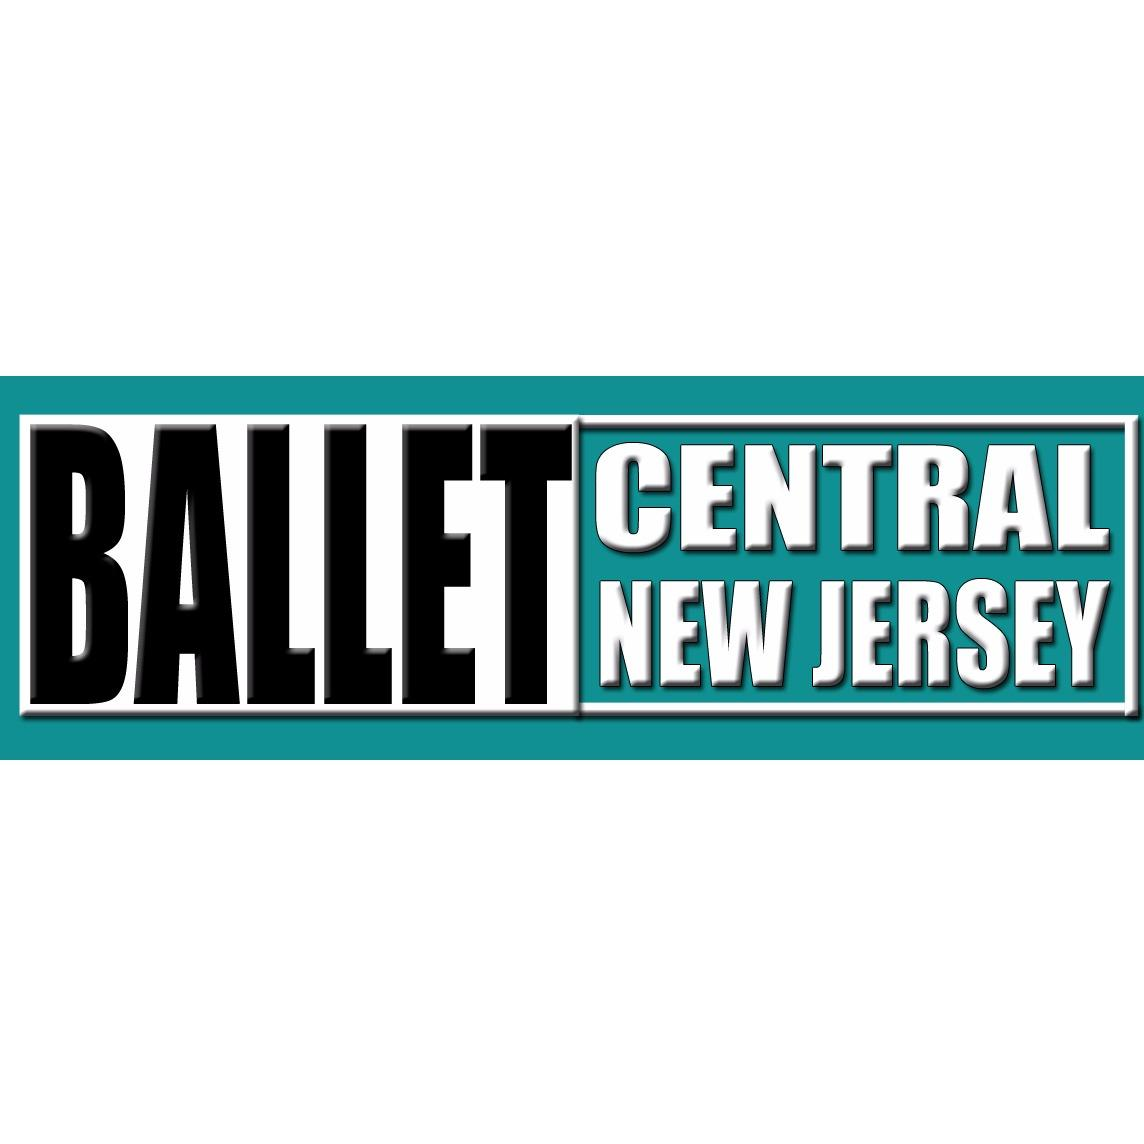 School of Ballet Central New Jersey